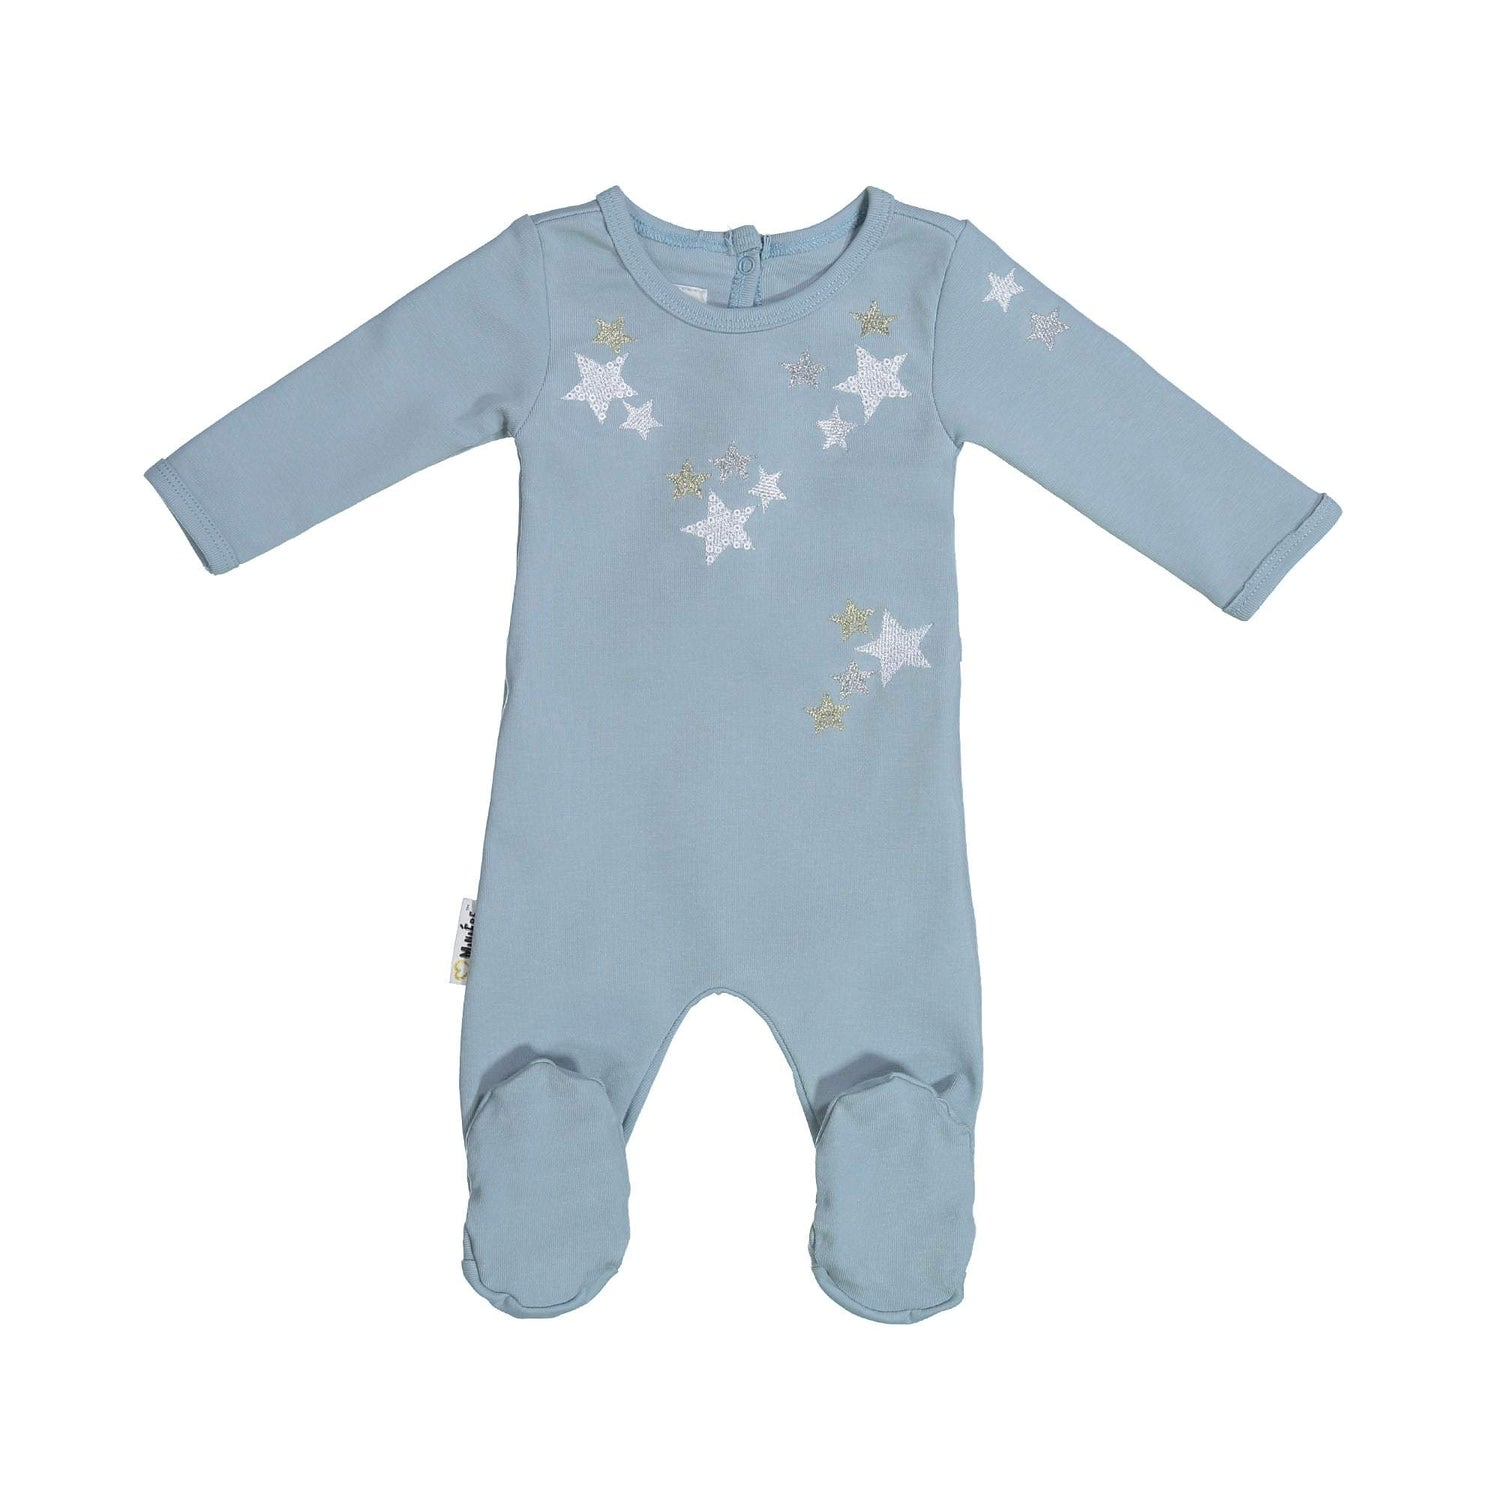 Embroidered Star Footie Maniere Accessories Denim Blue 6 Month